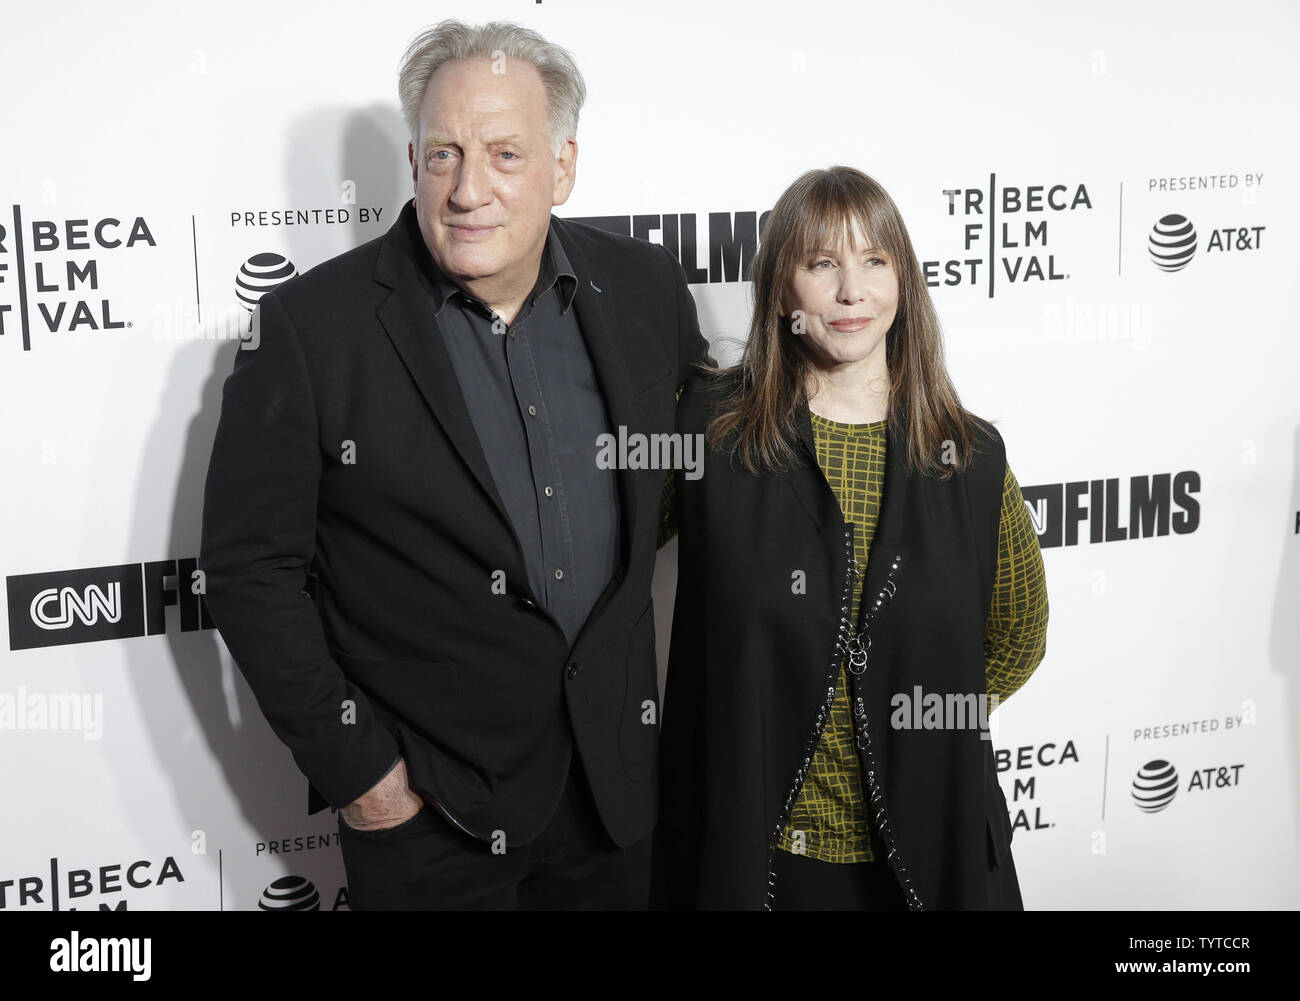 Alan Zweibel and Laraine Newman arrive on the red carpet at the Opening Night Gala of 'Love, Gilda' as part of 2018 Tribeca Film Festival at the Beacon Theatre on April 18, 2018 in New York City.   Photo by John Angelillo/UPI - Stock Image